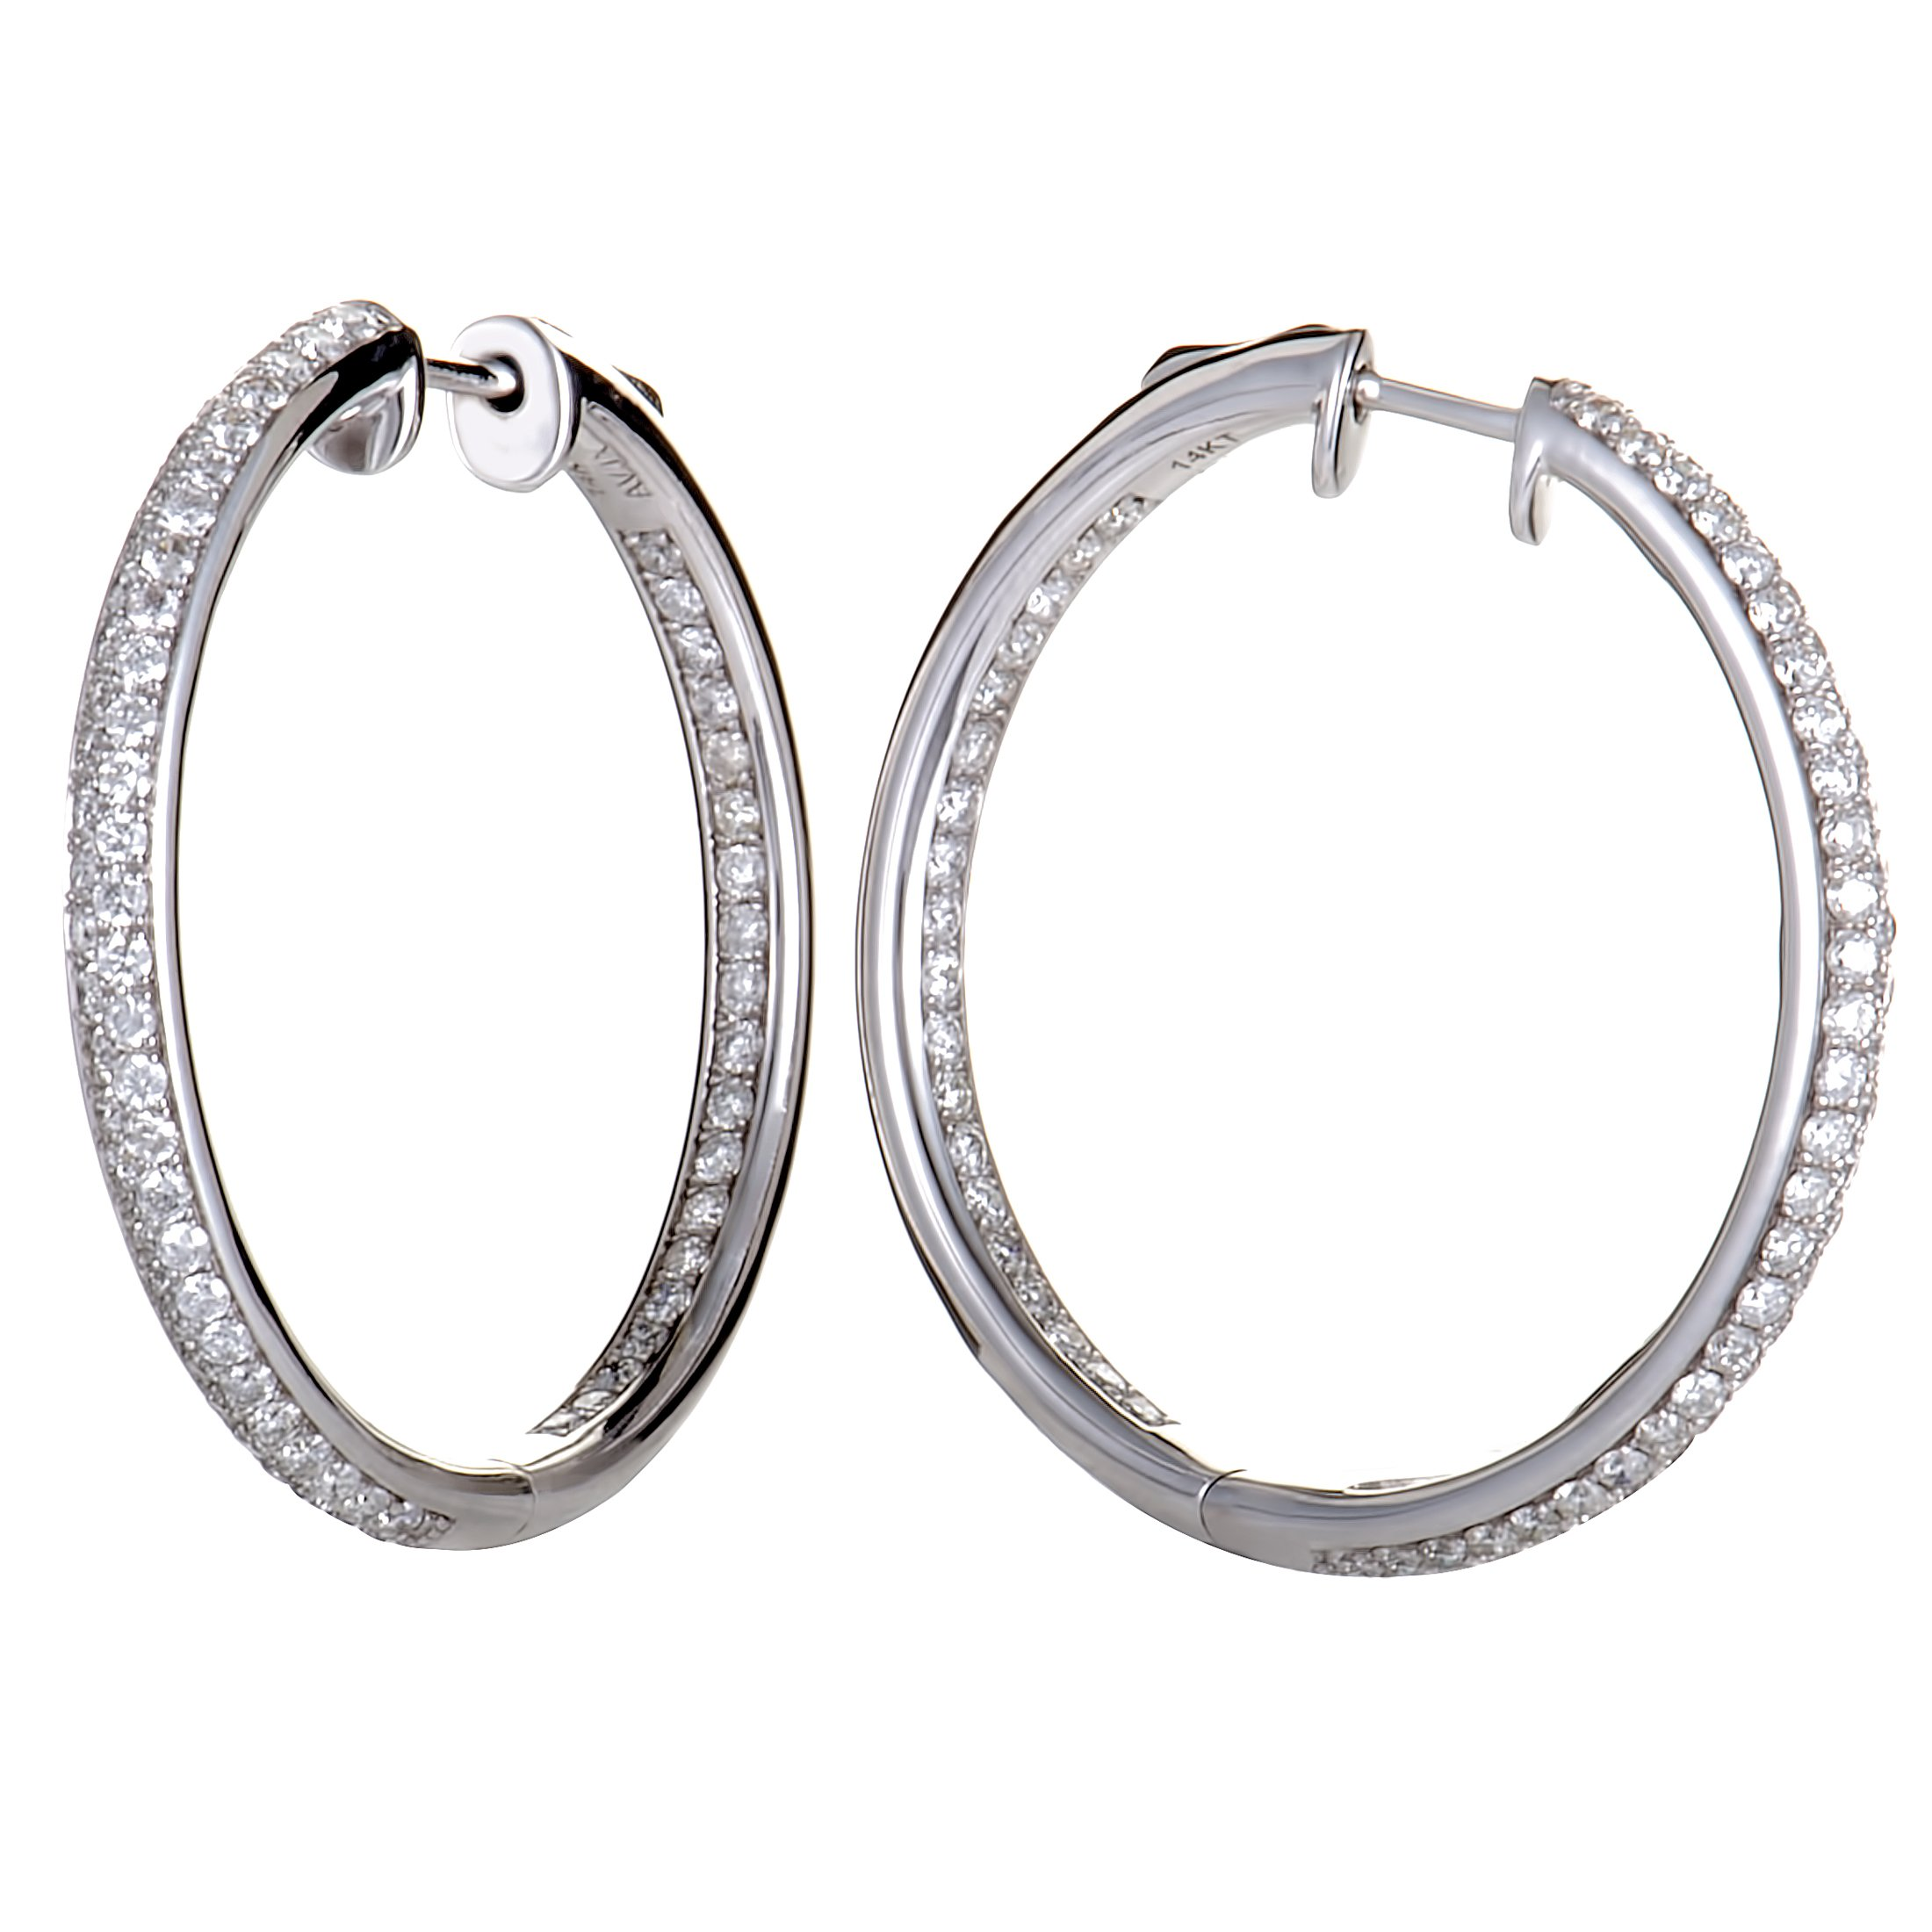 1.0 Carat (ctw) Round Diamond Pave Hoop Earrings in 14K White Gold; 1 CT White Diamonds (G Color, SI1-SI2 Clarity) in 1.25'' Hoops